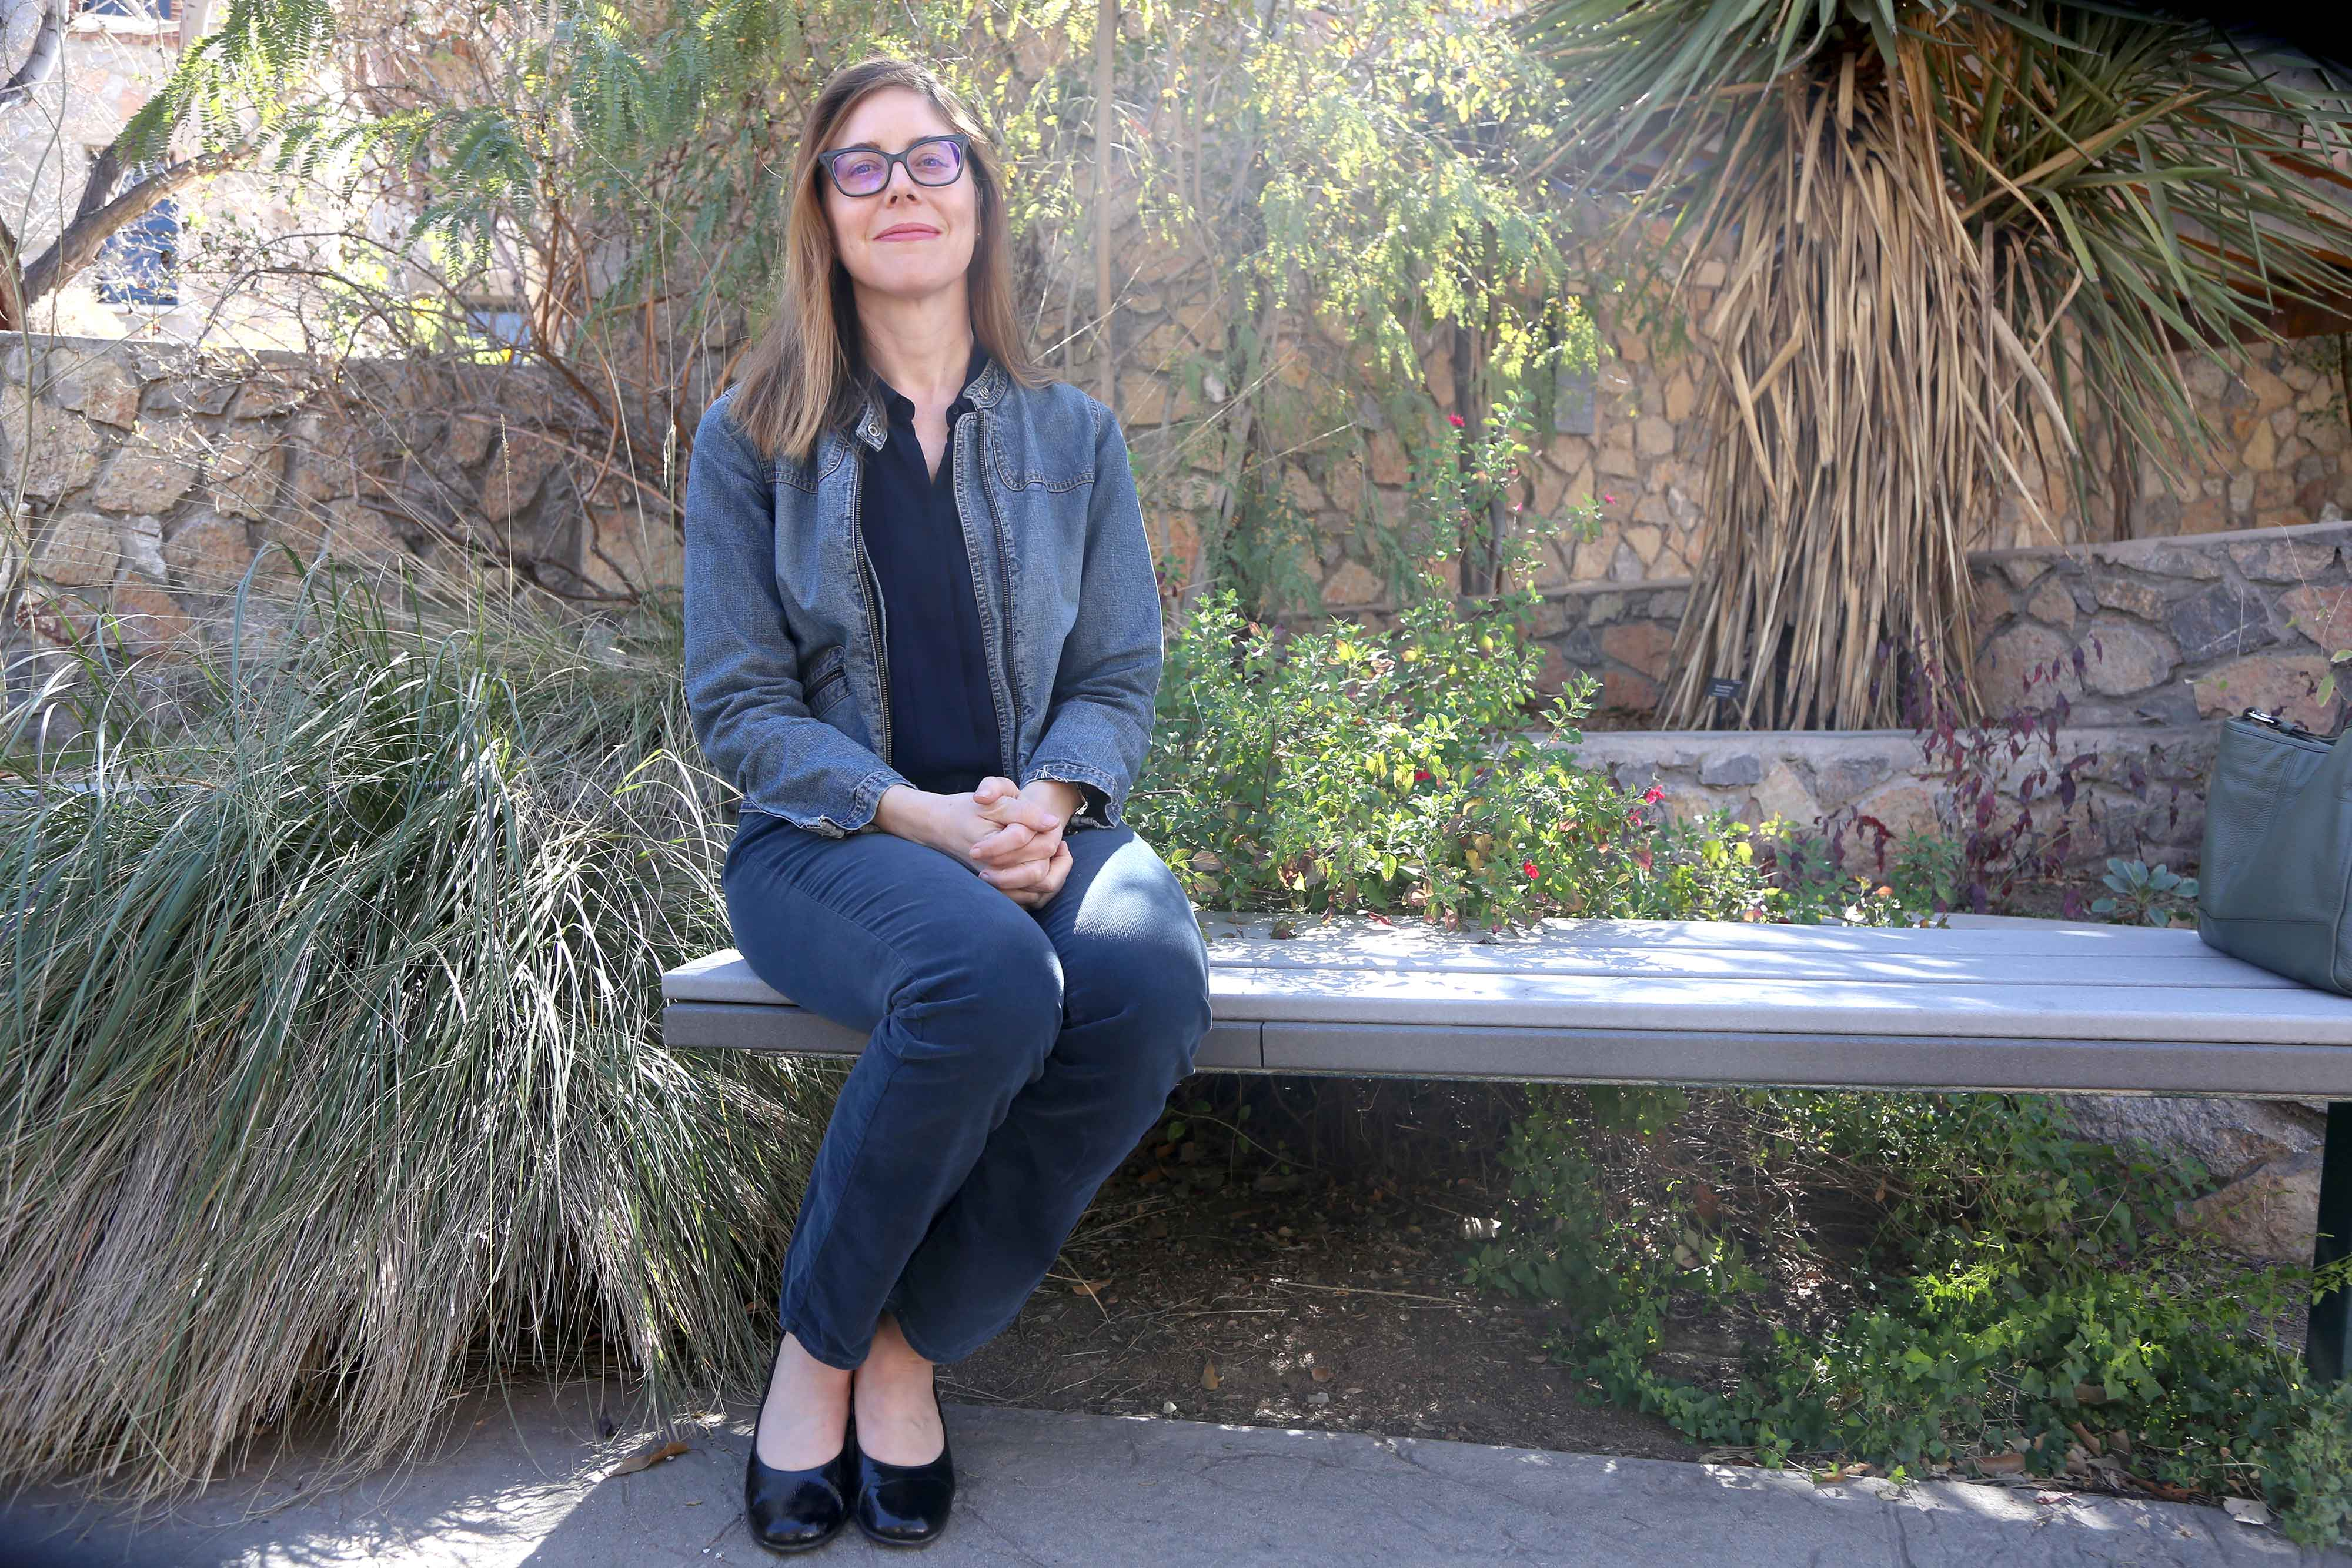 Associate professor of statistics, Amy Wagler is making efforts to get more students involved in the Frontera Land Alliance.